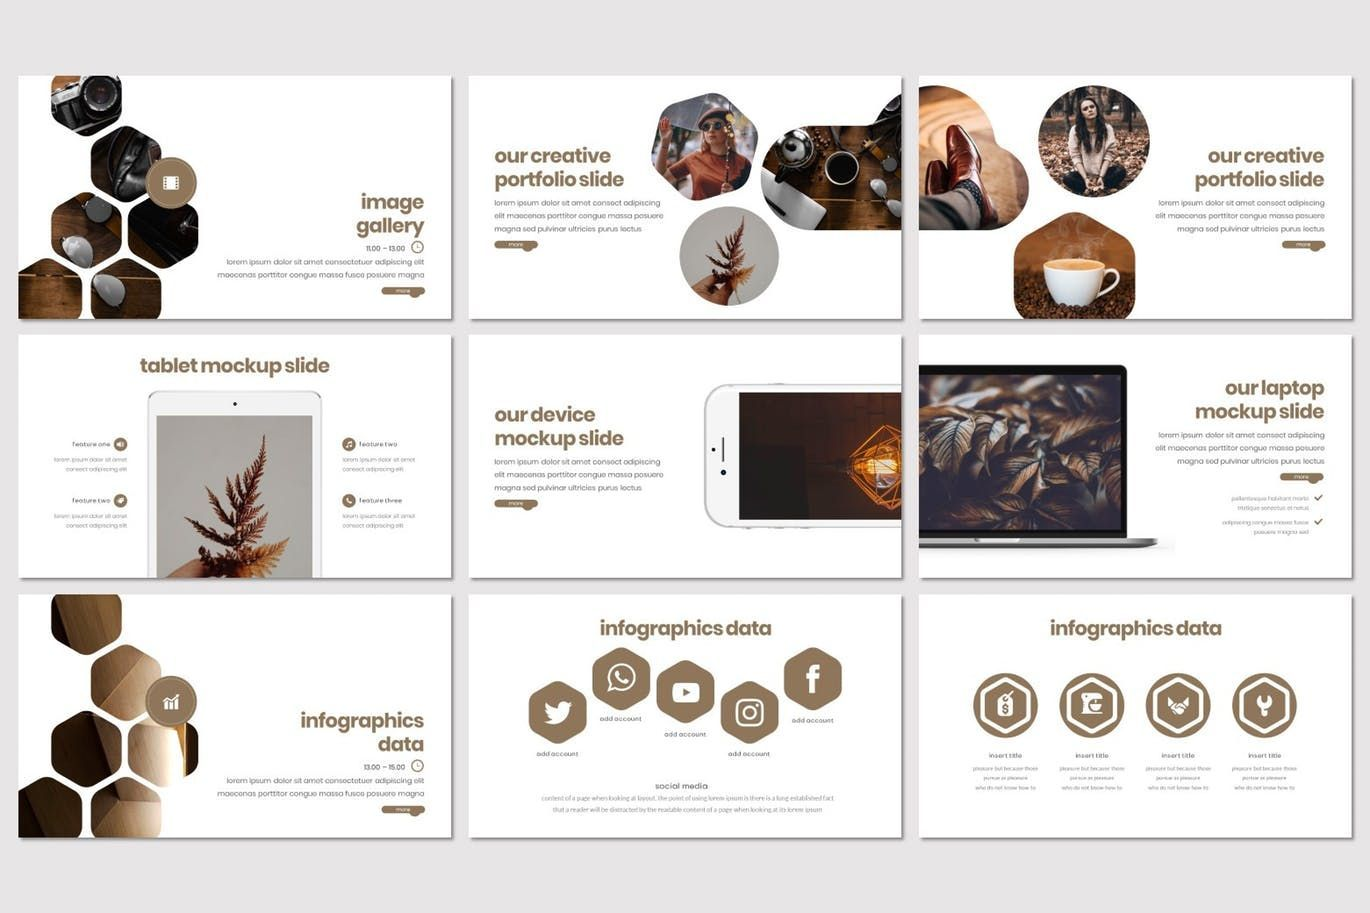 Cloudstrot - PowerPoint Template, Slide 4, 07898, Presentation Templates — PoweredTemplate.com